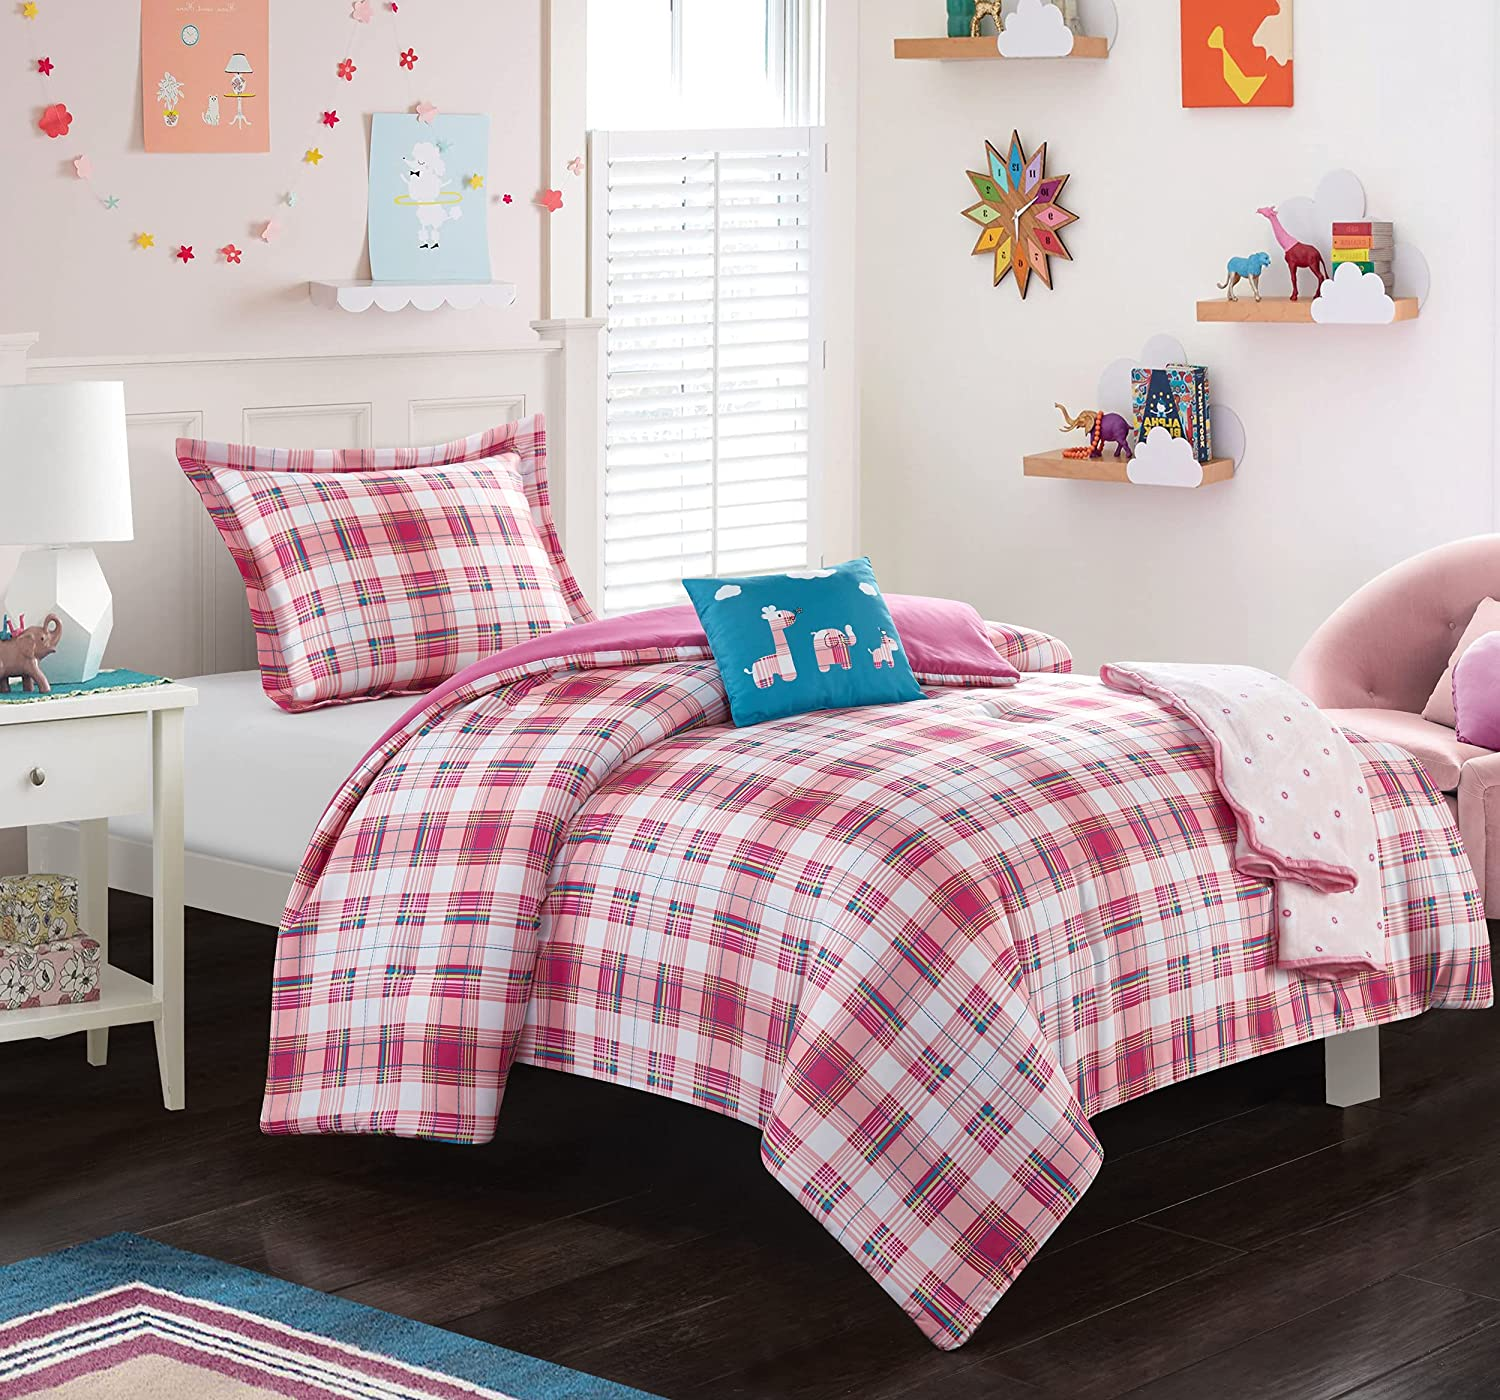 Chic Max 62% OFF Home Jenna 5 Piece Comforter New York Mall Patchwork A Stitched Set Plaid